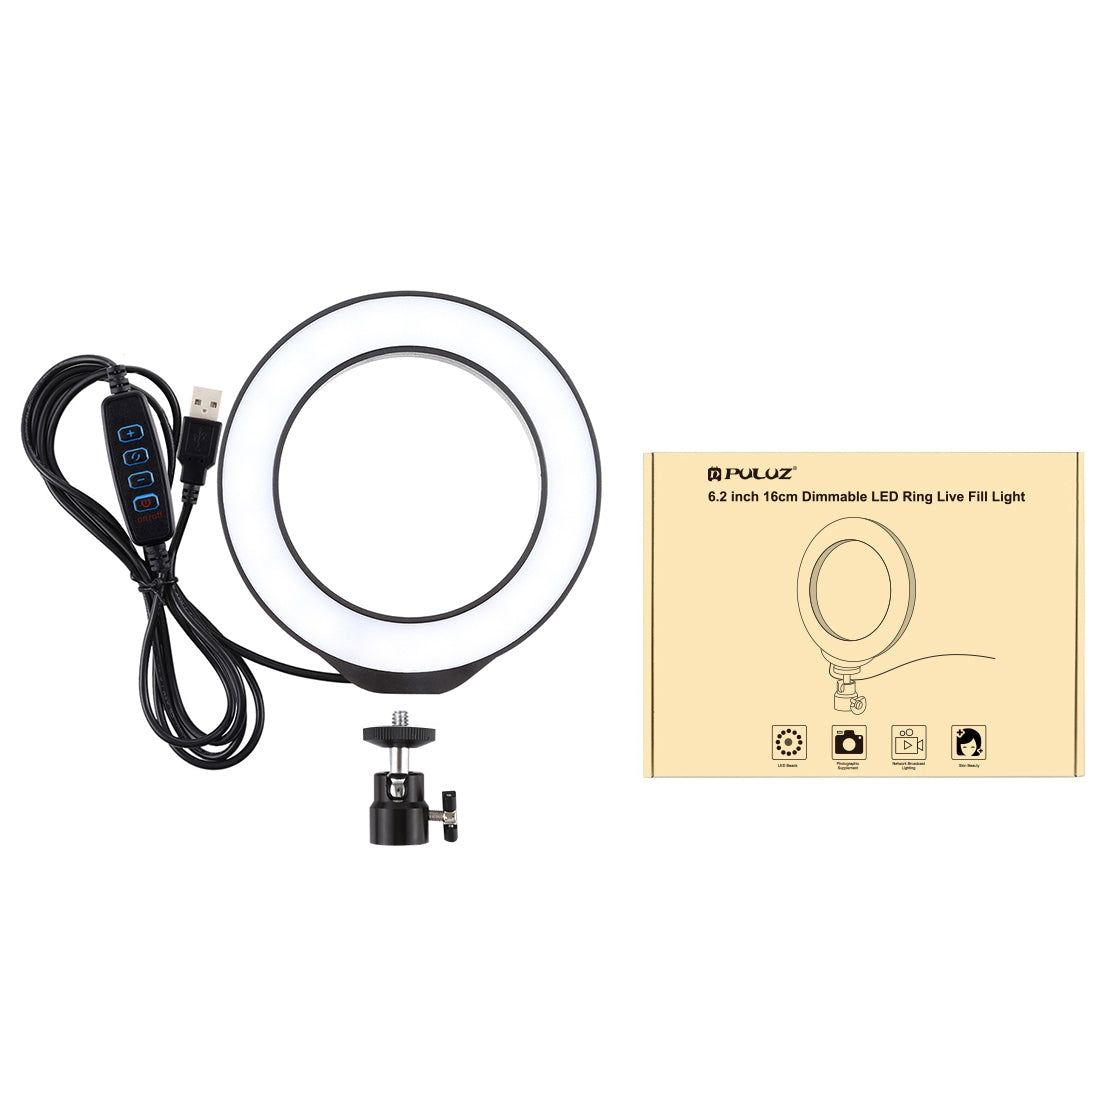 6.2 inch 16cm USB 3 Modes Dimmable LED Ring Vlogging Photography Video Lights  with Cold Shoe Tripod Ball Head(Black)